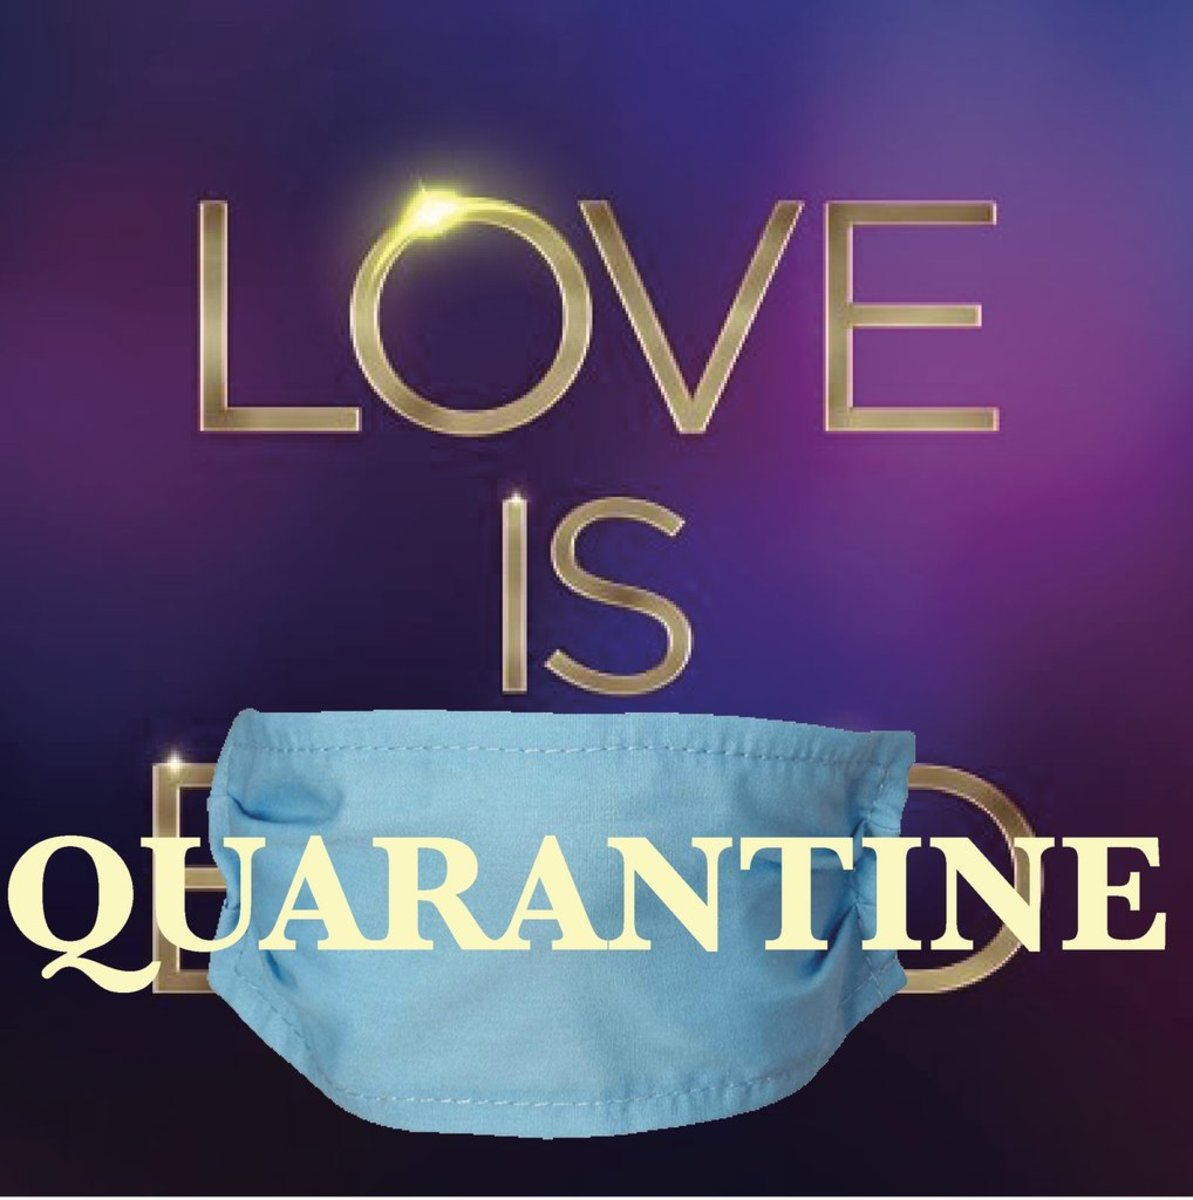 By the Time Quarantine Is Over Will the World Be a Better Place?